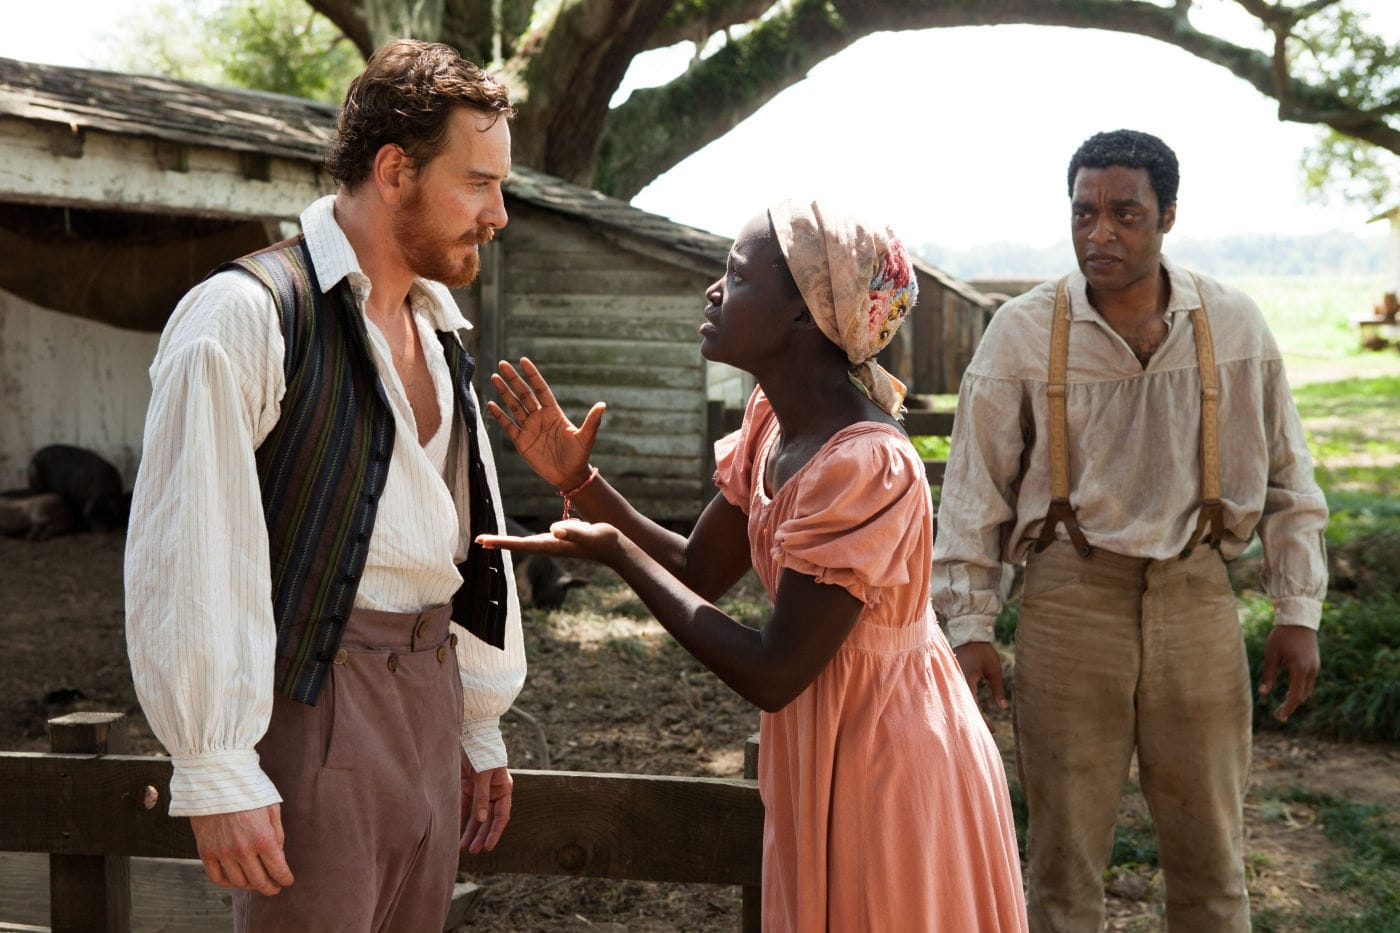 Essays on 12 years a slave